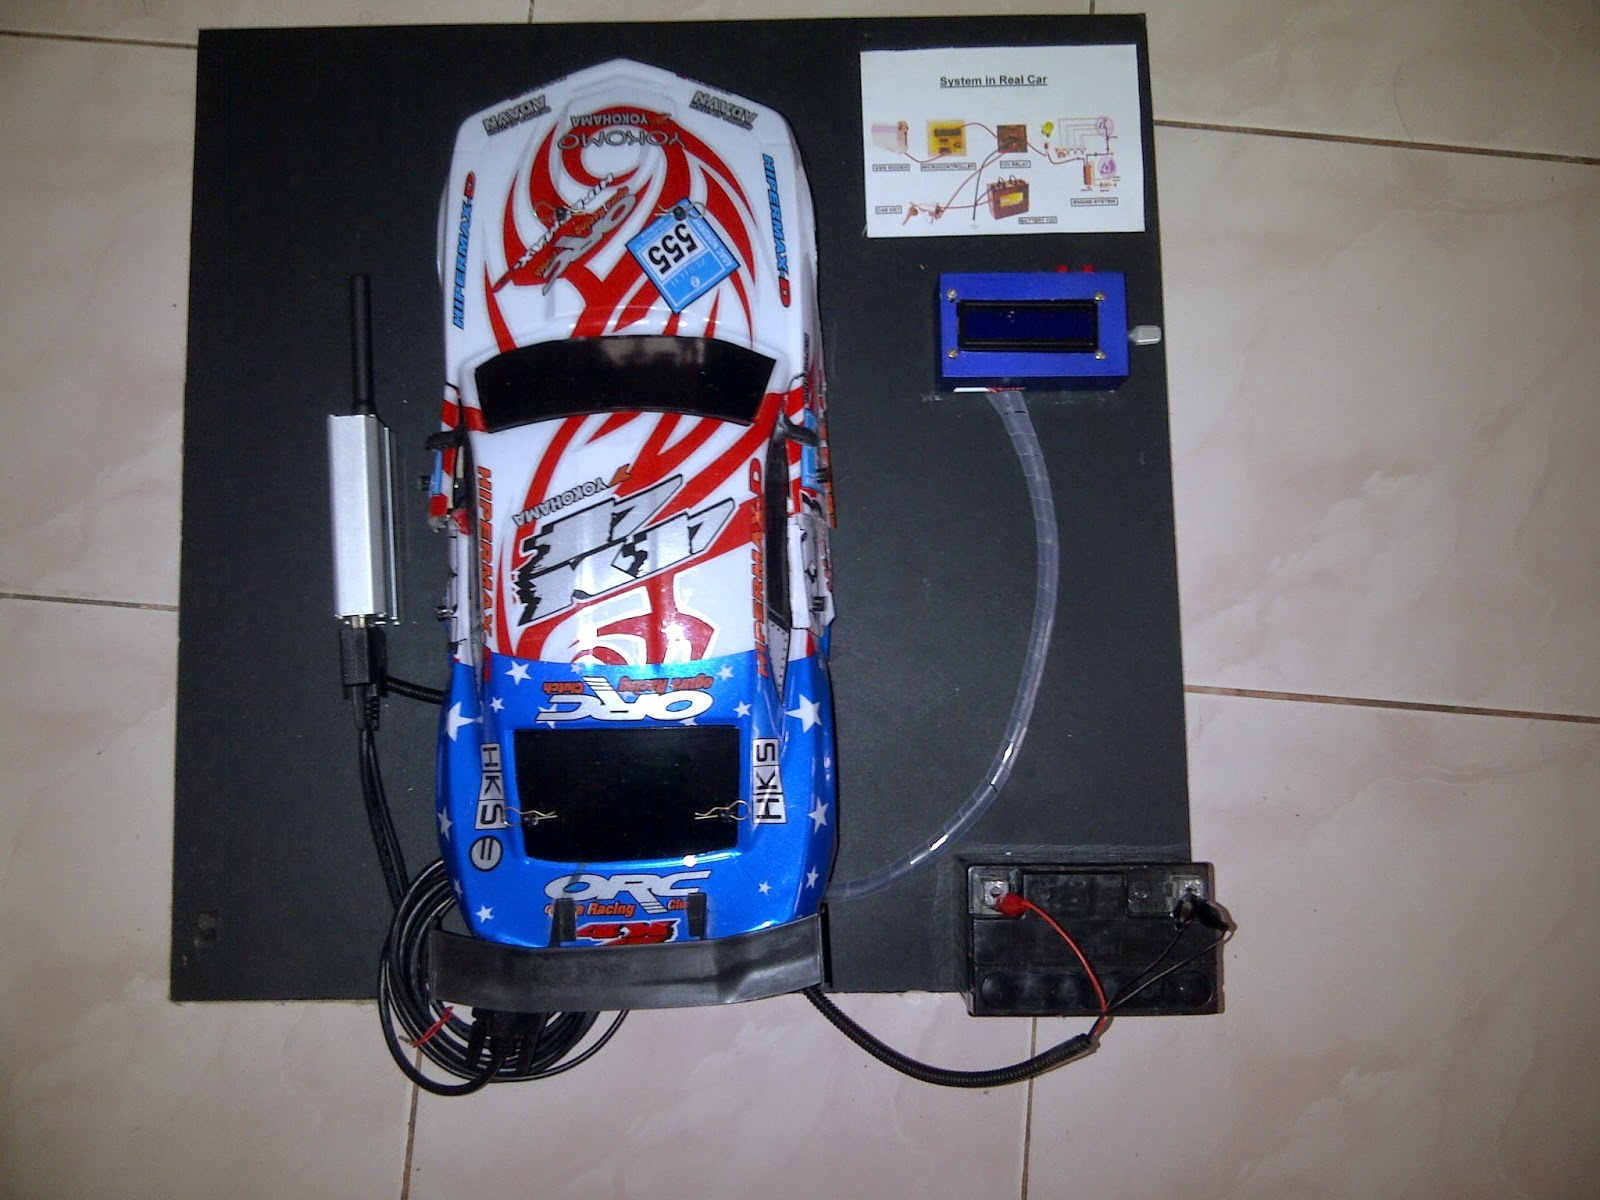 gsm based anti theft system Vehicle theft control system using gsm and can technology: this project  implements an anti-vehicle theft control system by connecting vehicle engine  control.